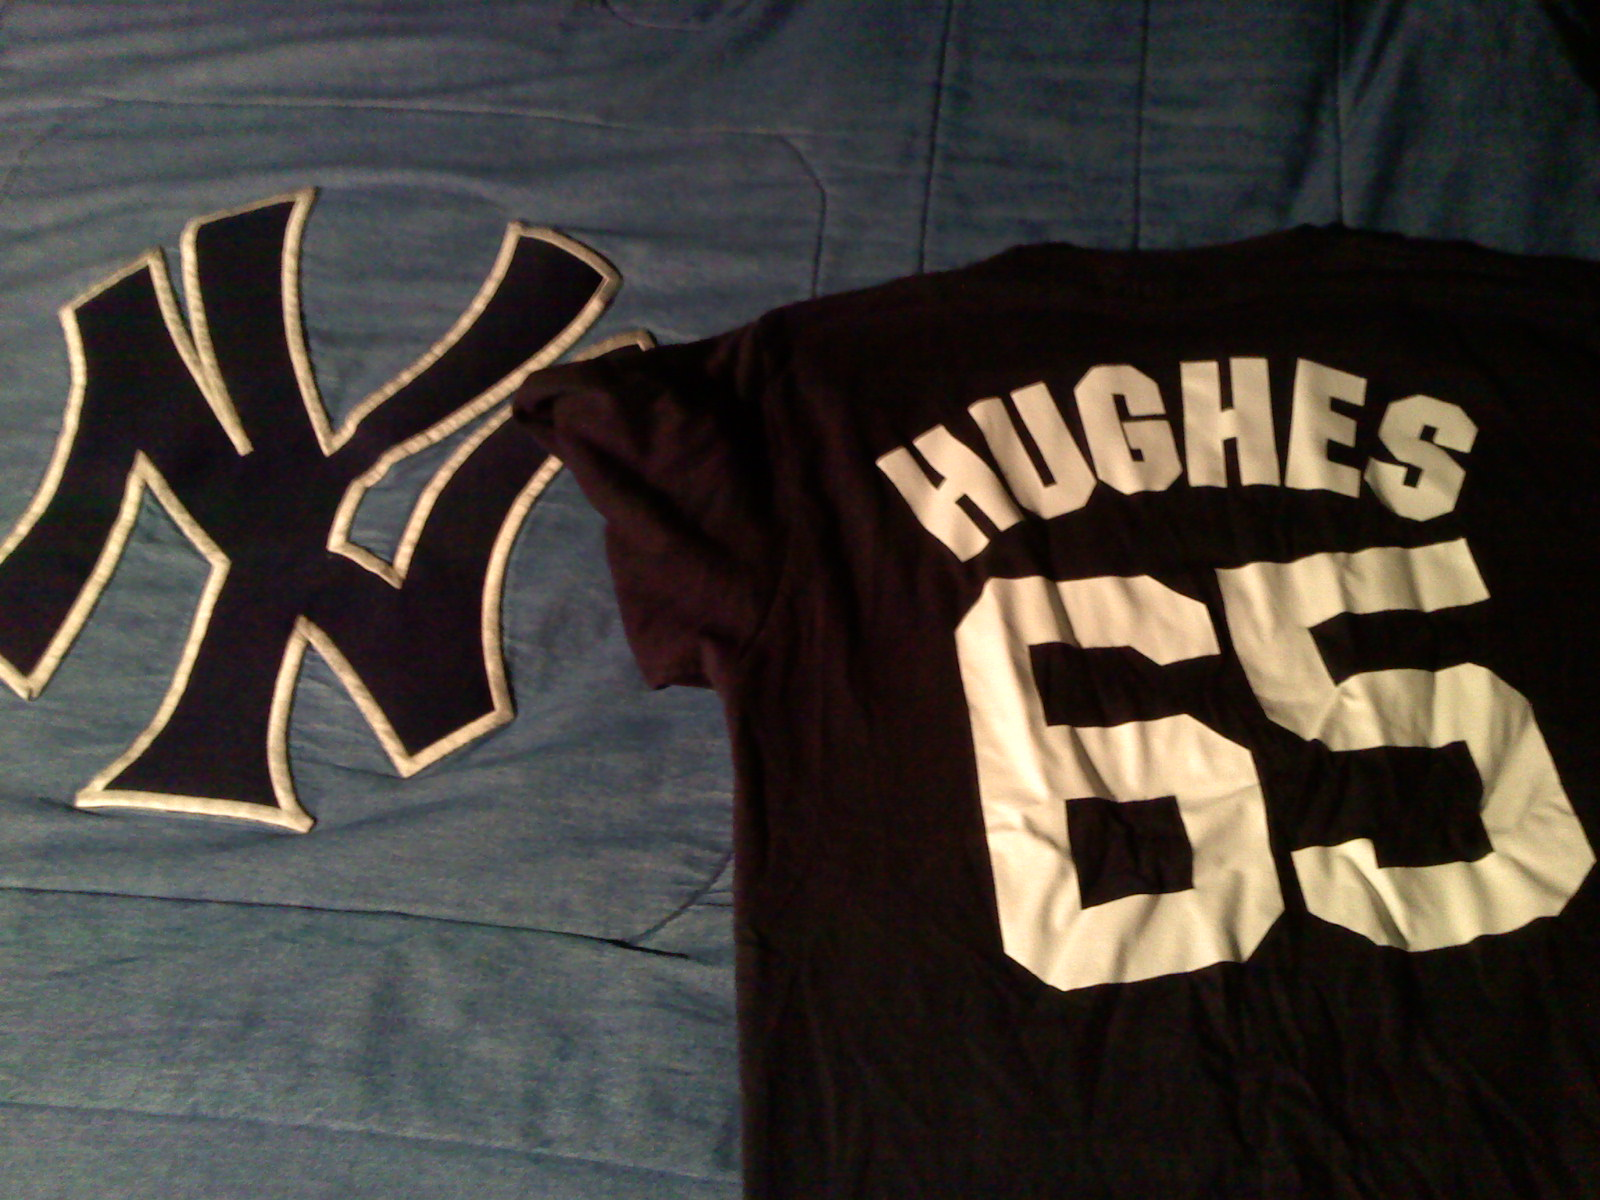 I wore this today and Hughes came close to a no-hitter!